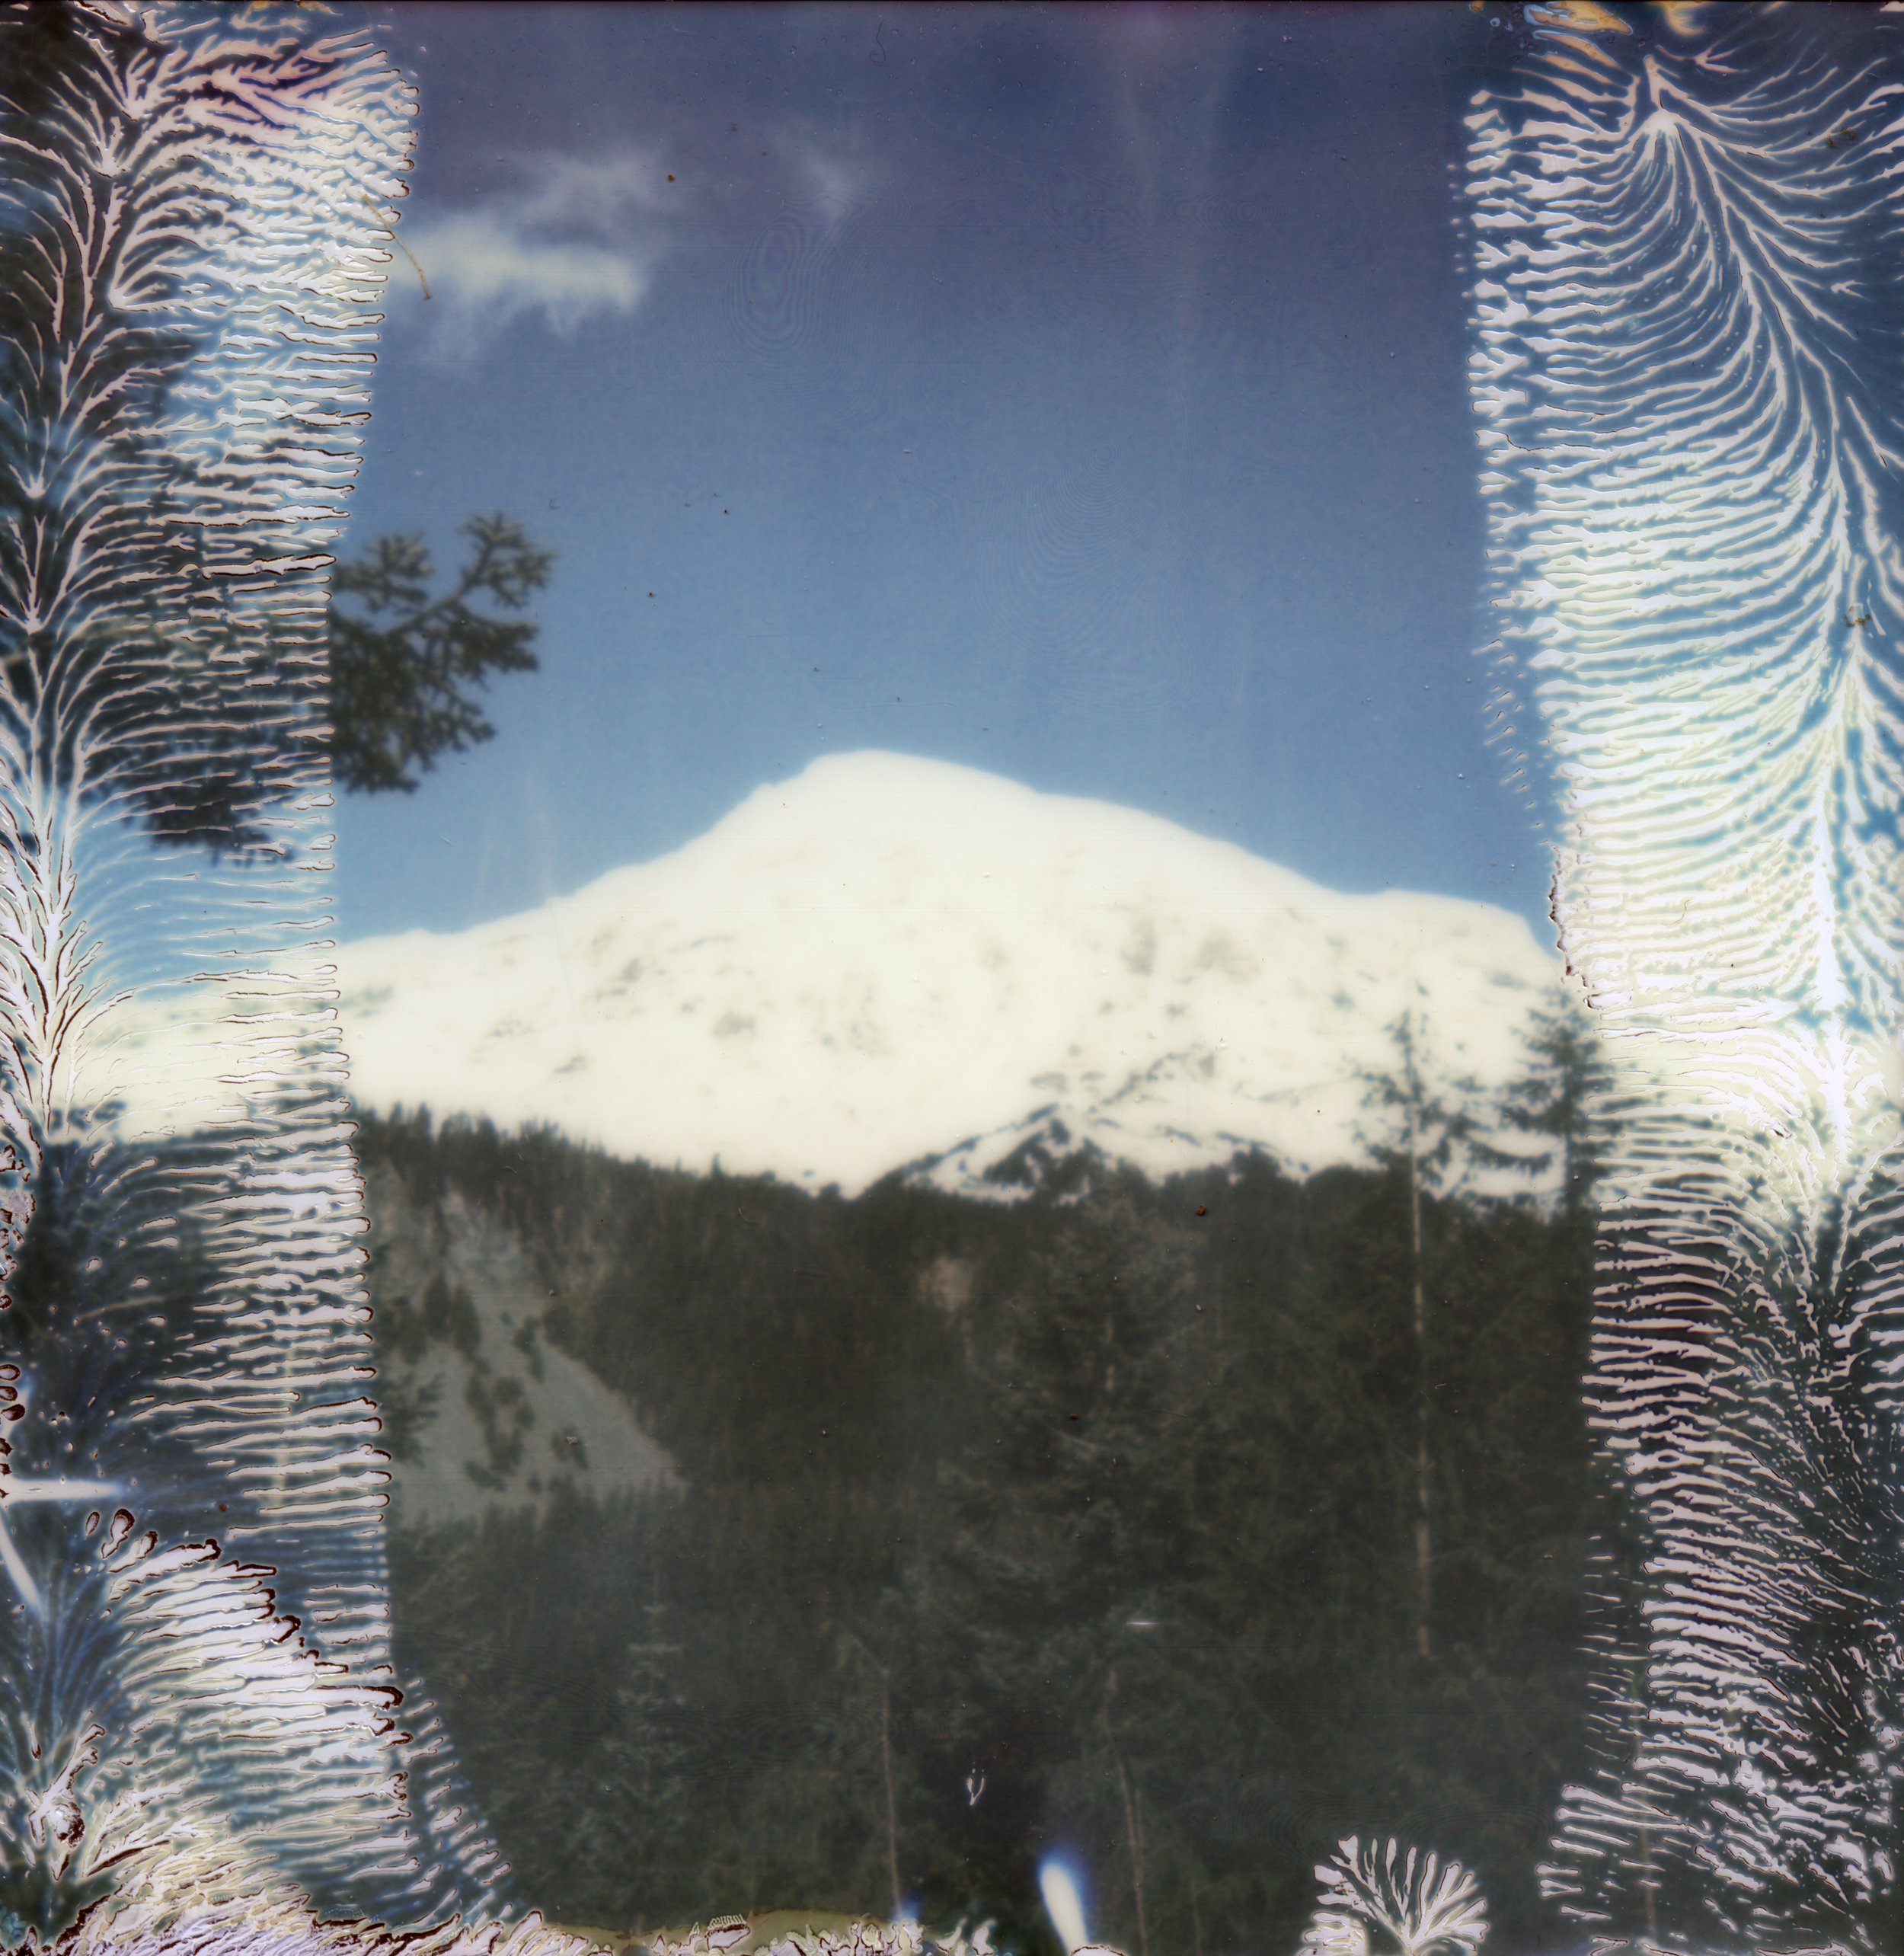 Bleed (Glacier), 2015 C-print  courtesy of Fourteen30 Contemporary, Portland, Oregon